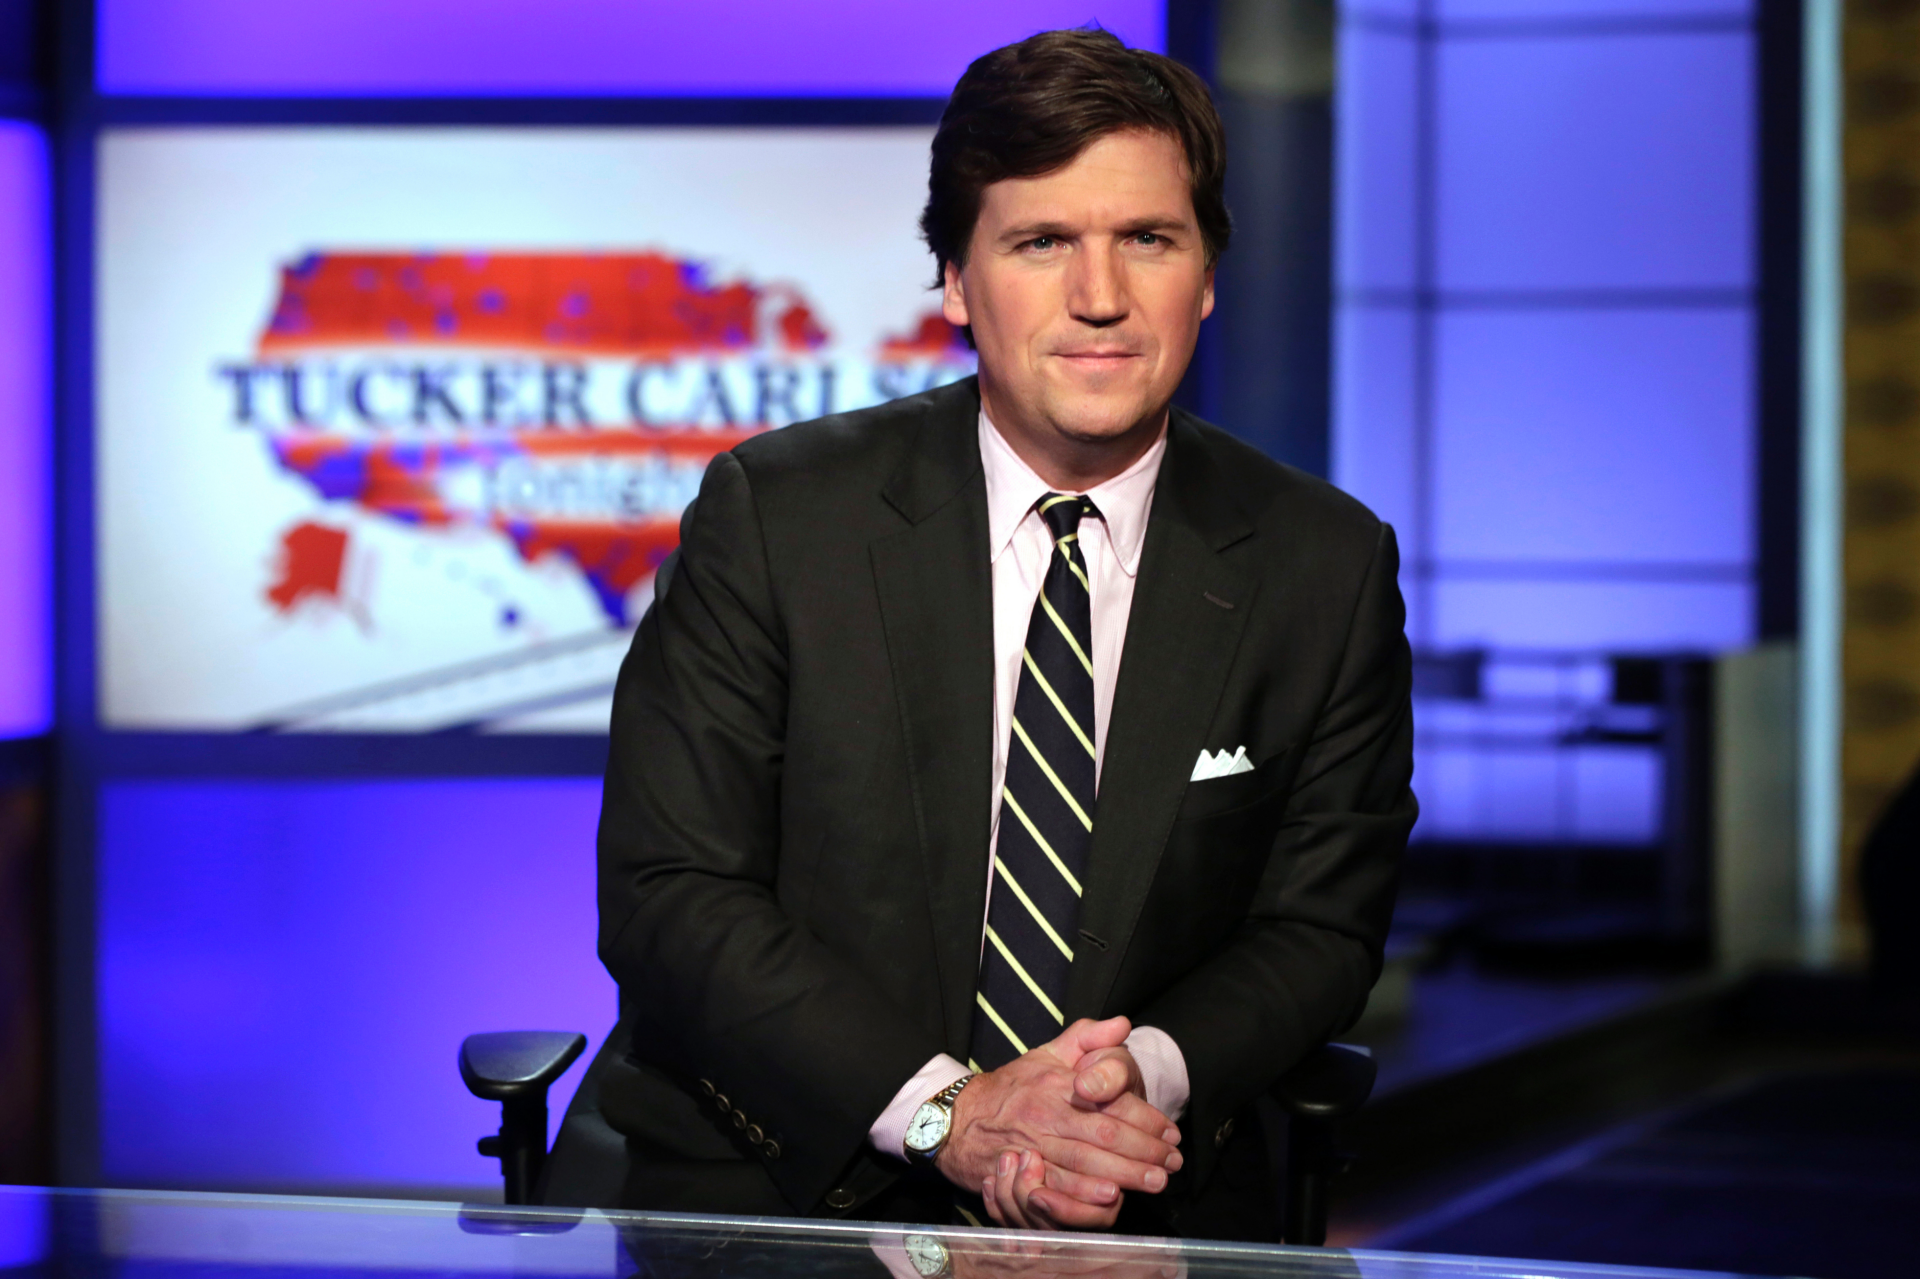 Westlake Legal Group ContentBroker_contentid-e9b4a8f26a7d4b04bd8e3c58ed323f1a Tucker Carlson criticizes Facebook for censoring interview with Chinese virologist Sam Dorman fox-news/world/world-regions/china fox-news/tech/topics/big-tech-backlash fox-news/tech/companies/facebook fox-news/shows/tucker-carlson-tonight/transcript/tuckers-monologue fox-news/media/fox-news-flash fox-news/health/infectious-disease/coronavirus fox news fnc/opinion fnc article 2a6864ec-775c-5956-93db-b4e716383652